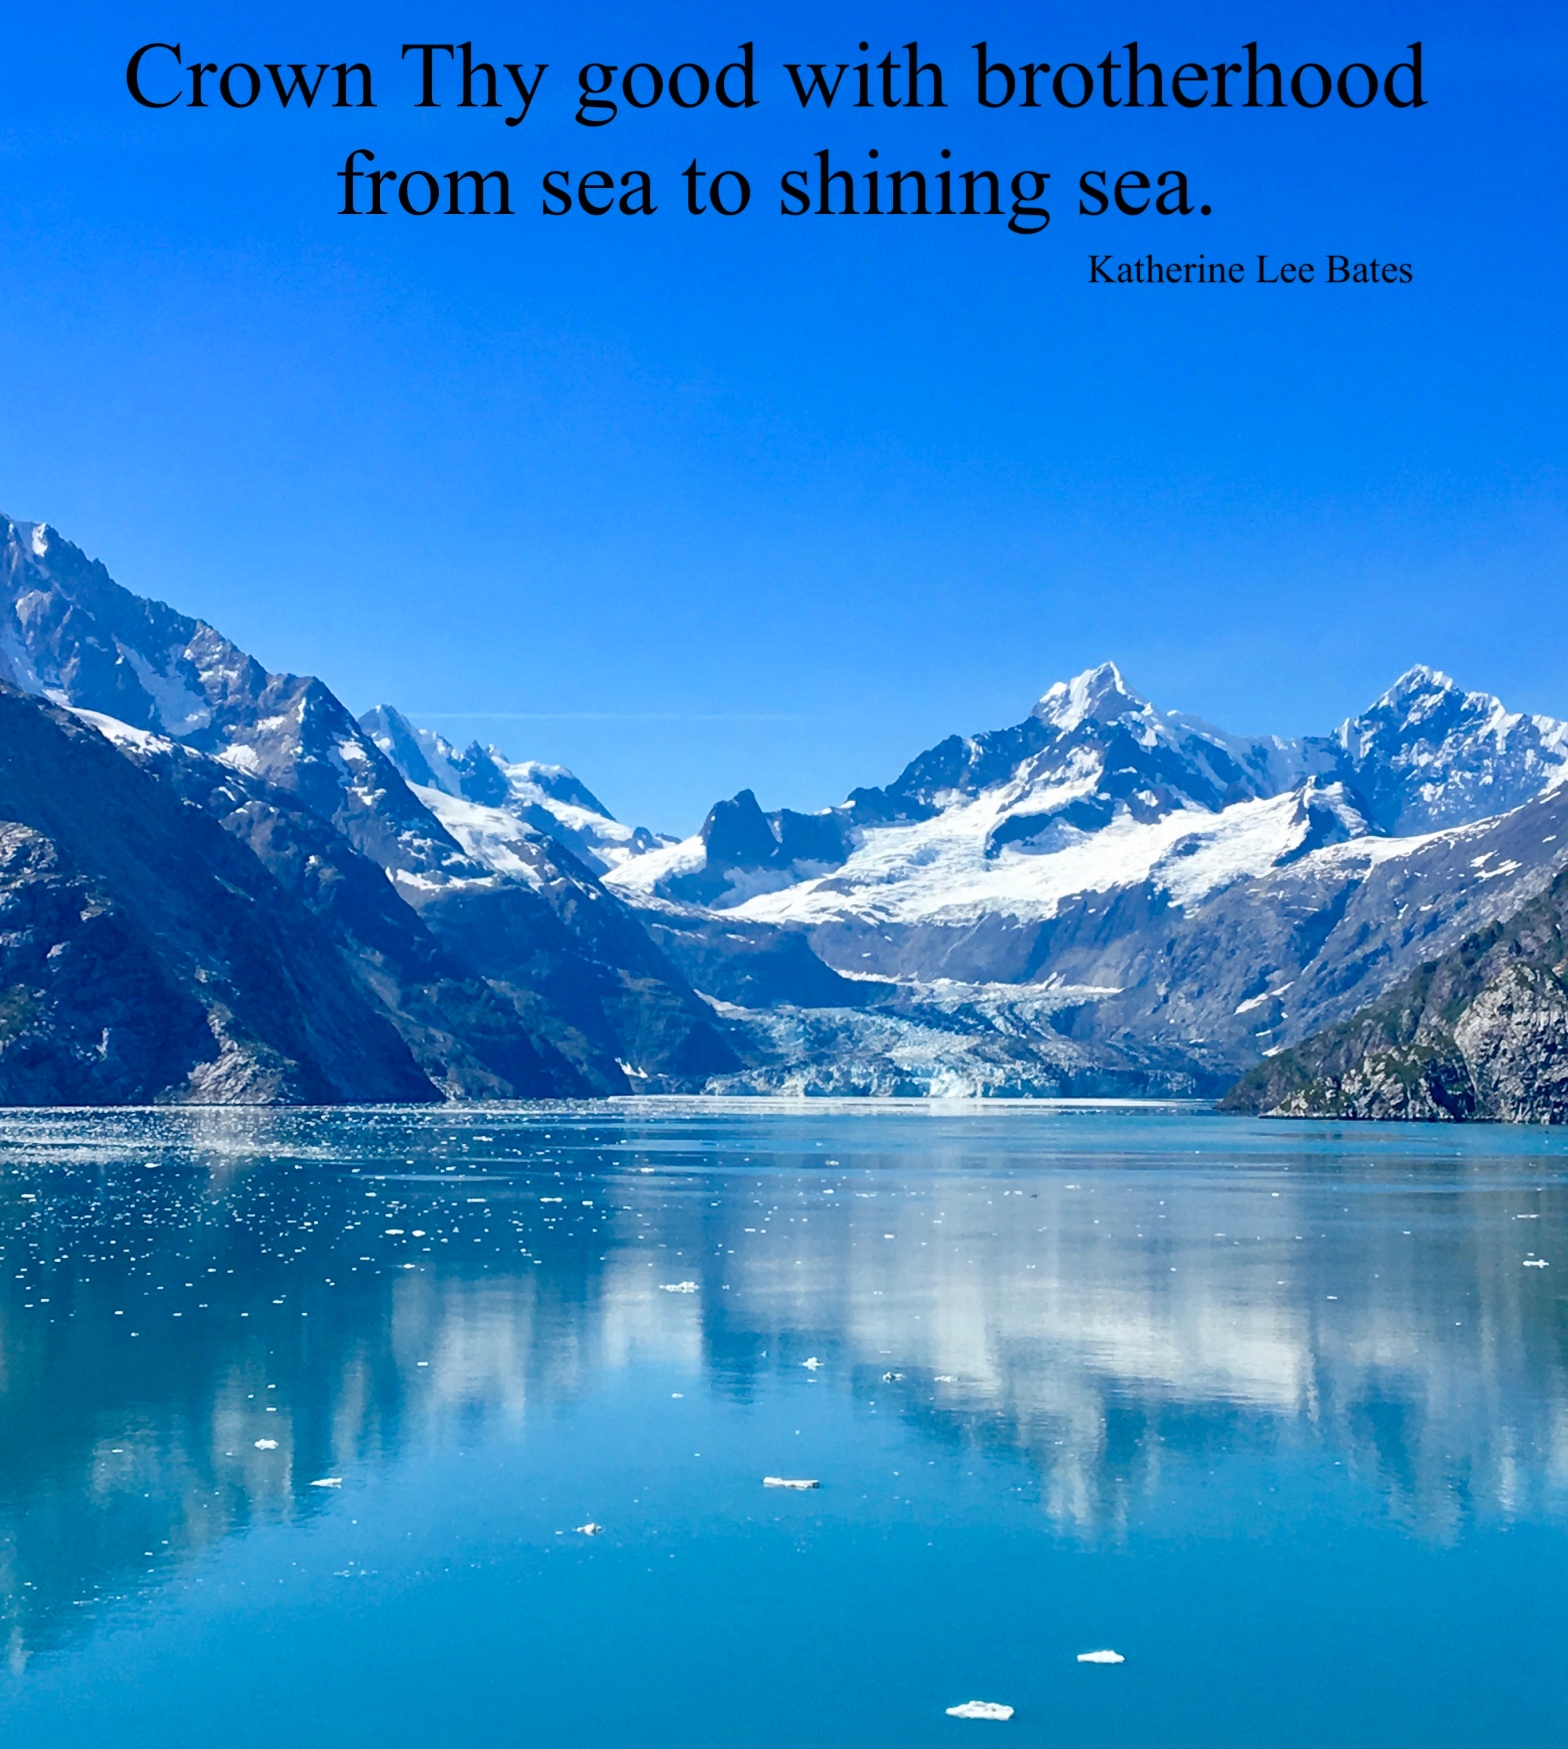 image of Glacier Bay in Alaska